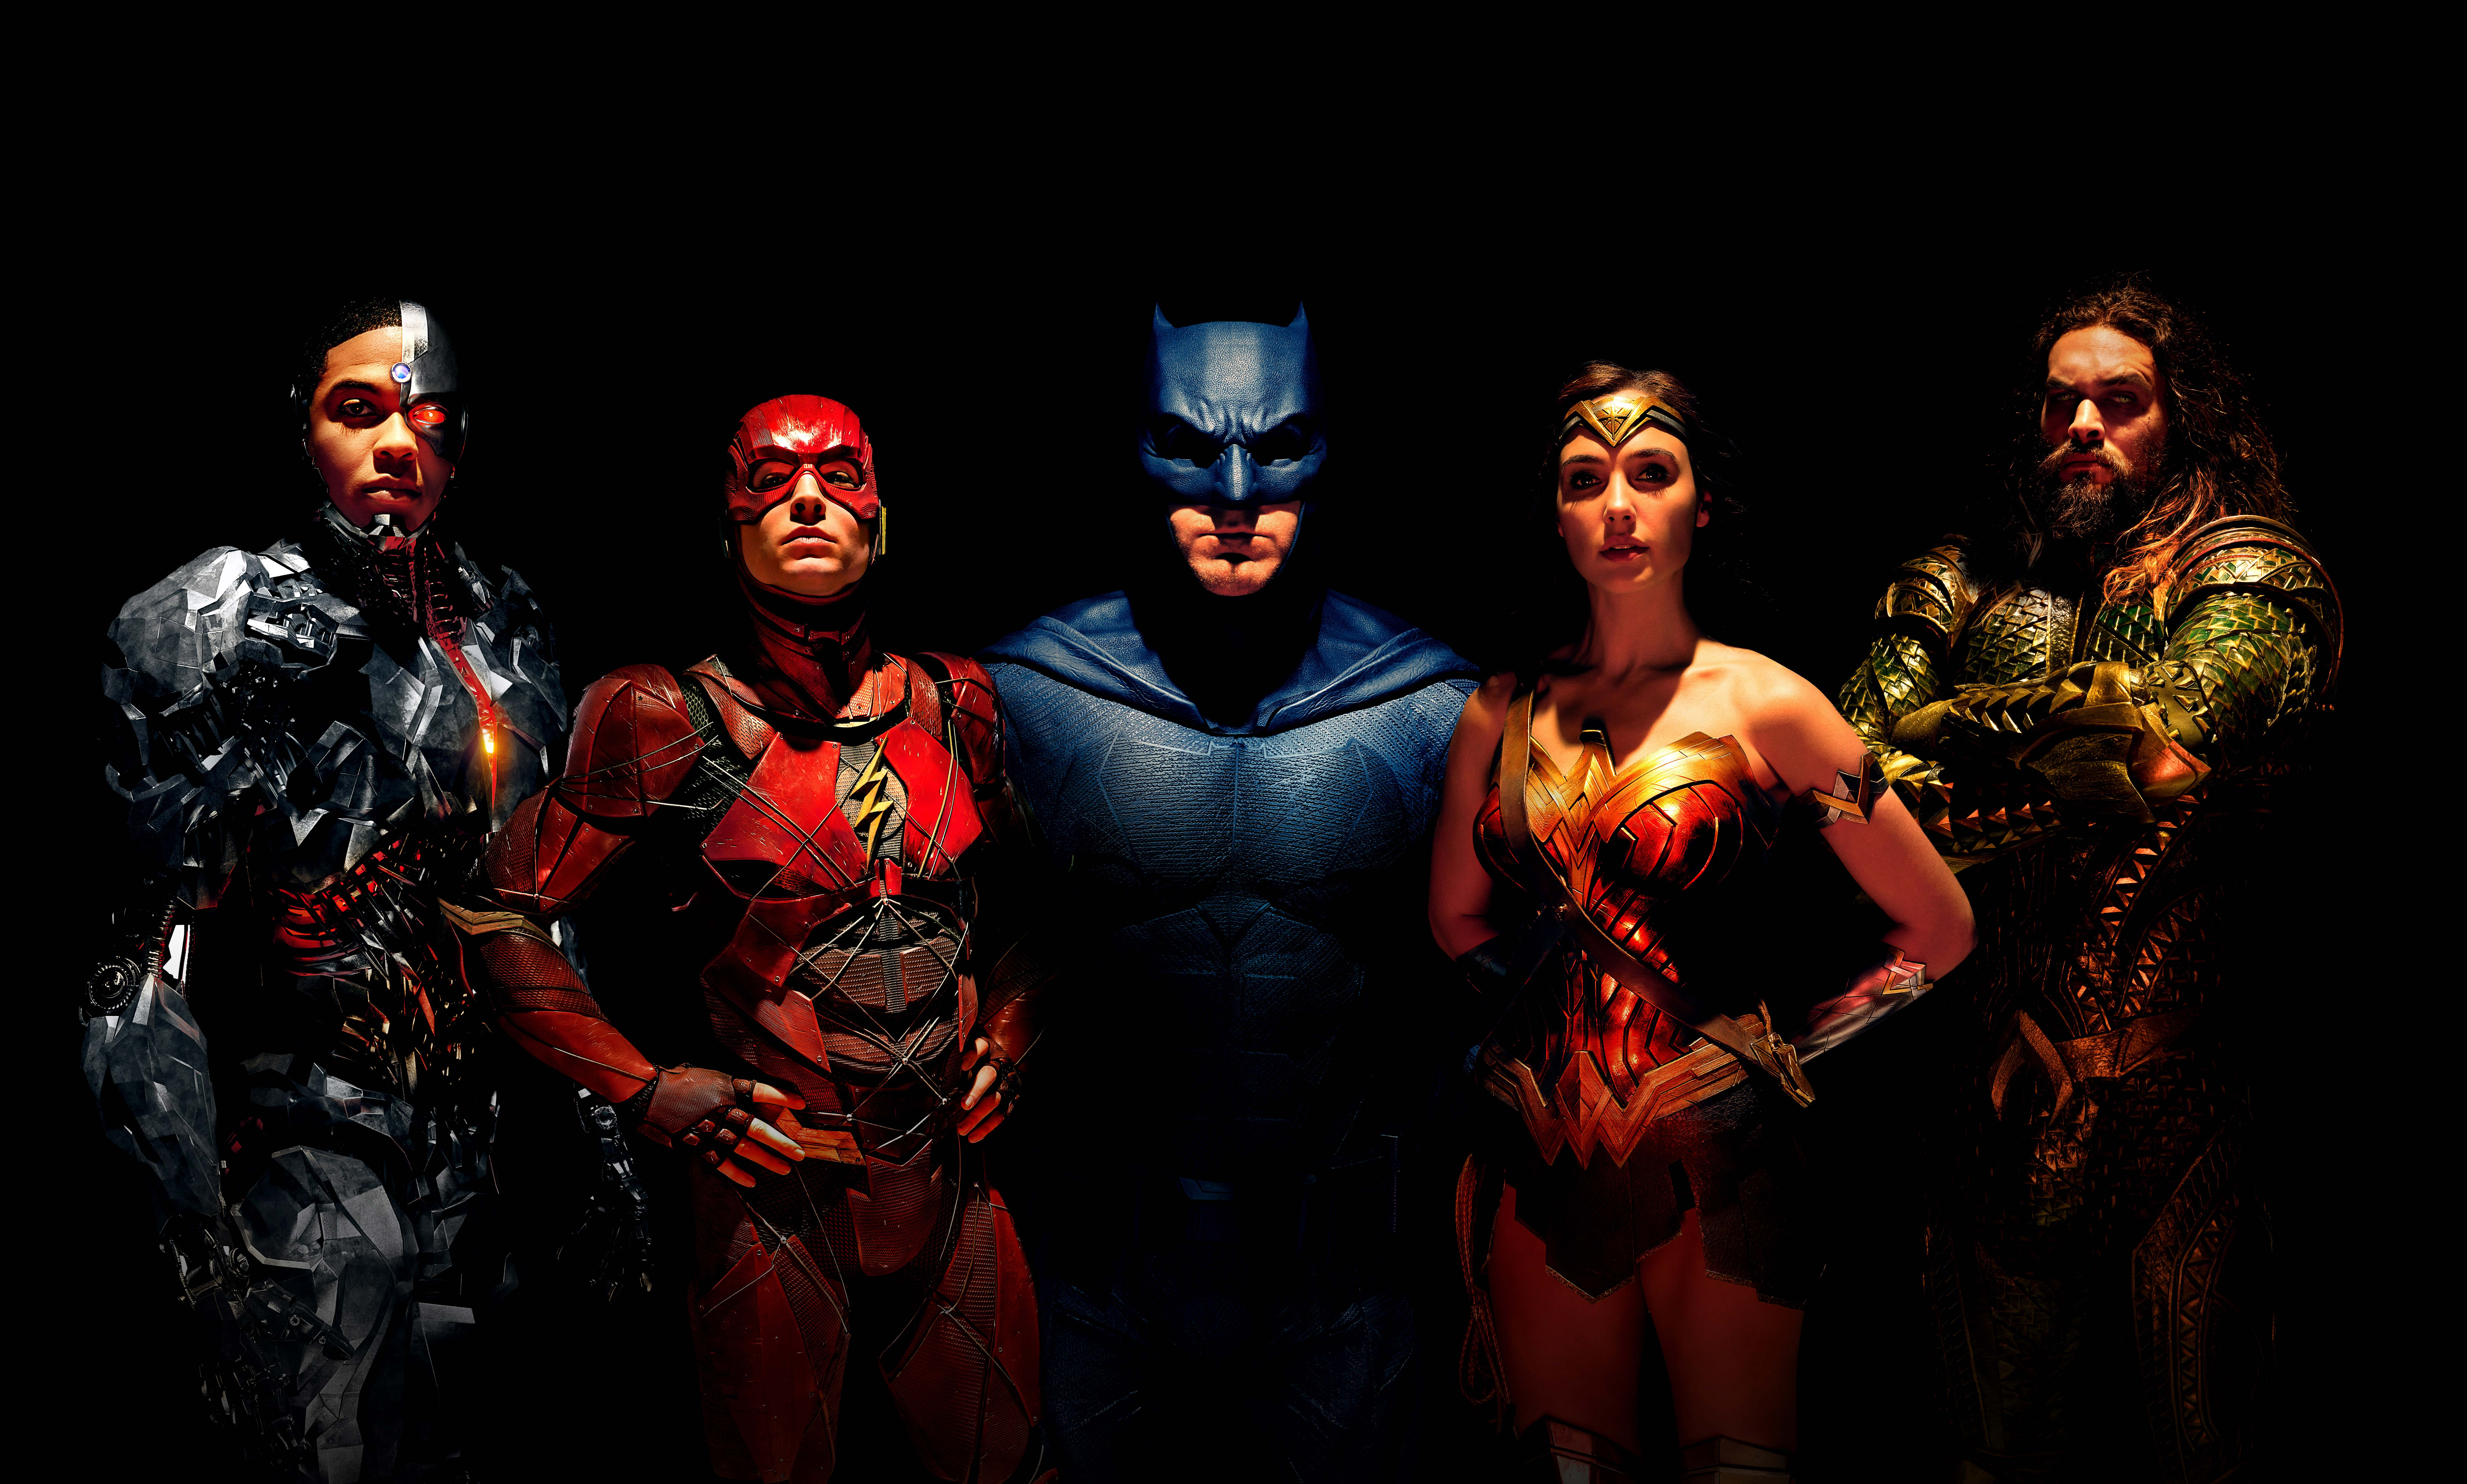 Justice league 10k 2017 hd movies 4k wallpapers images - 10k wallpaper nature ...